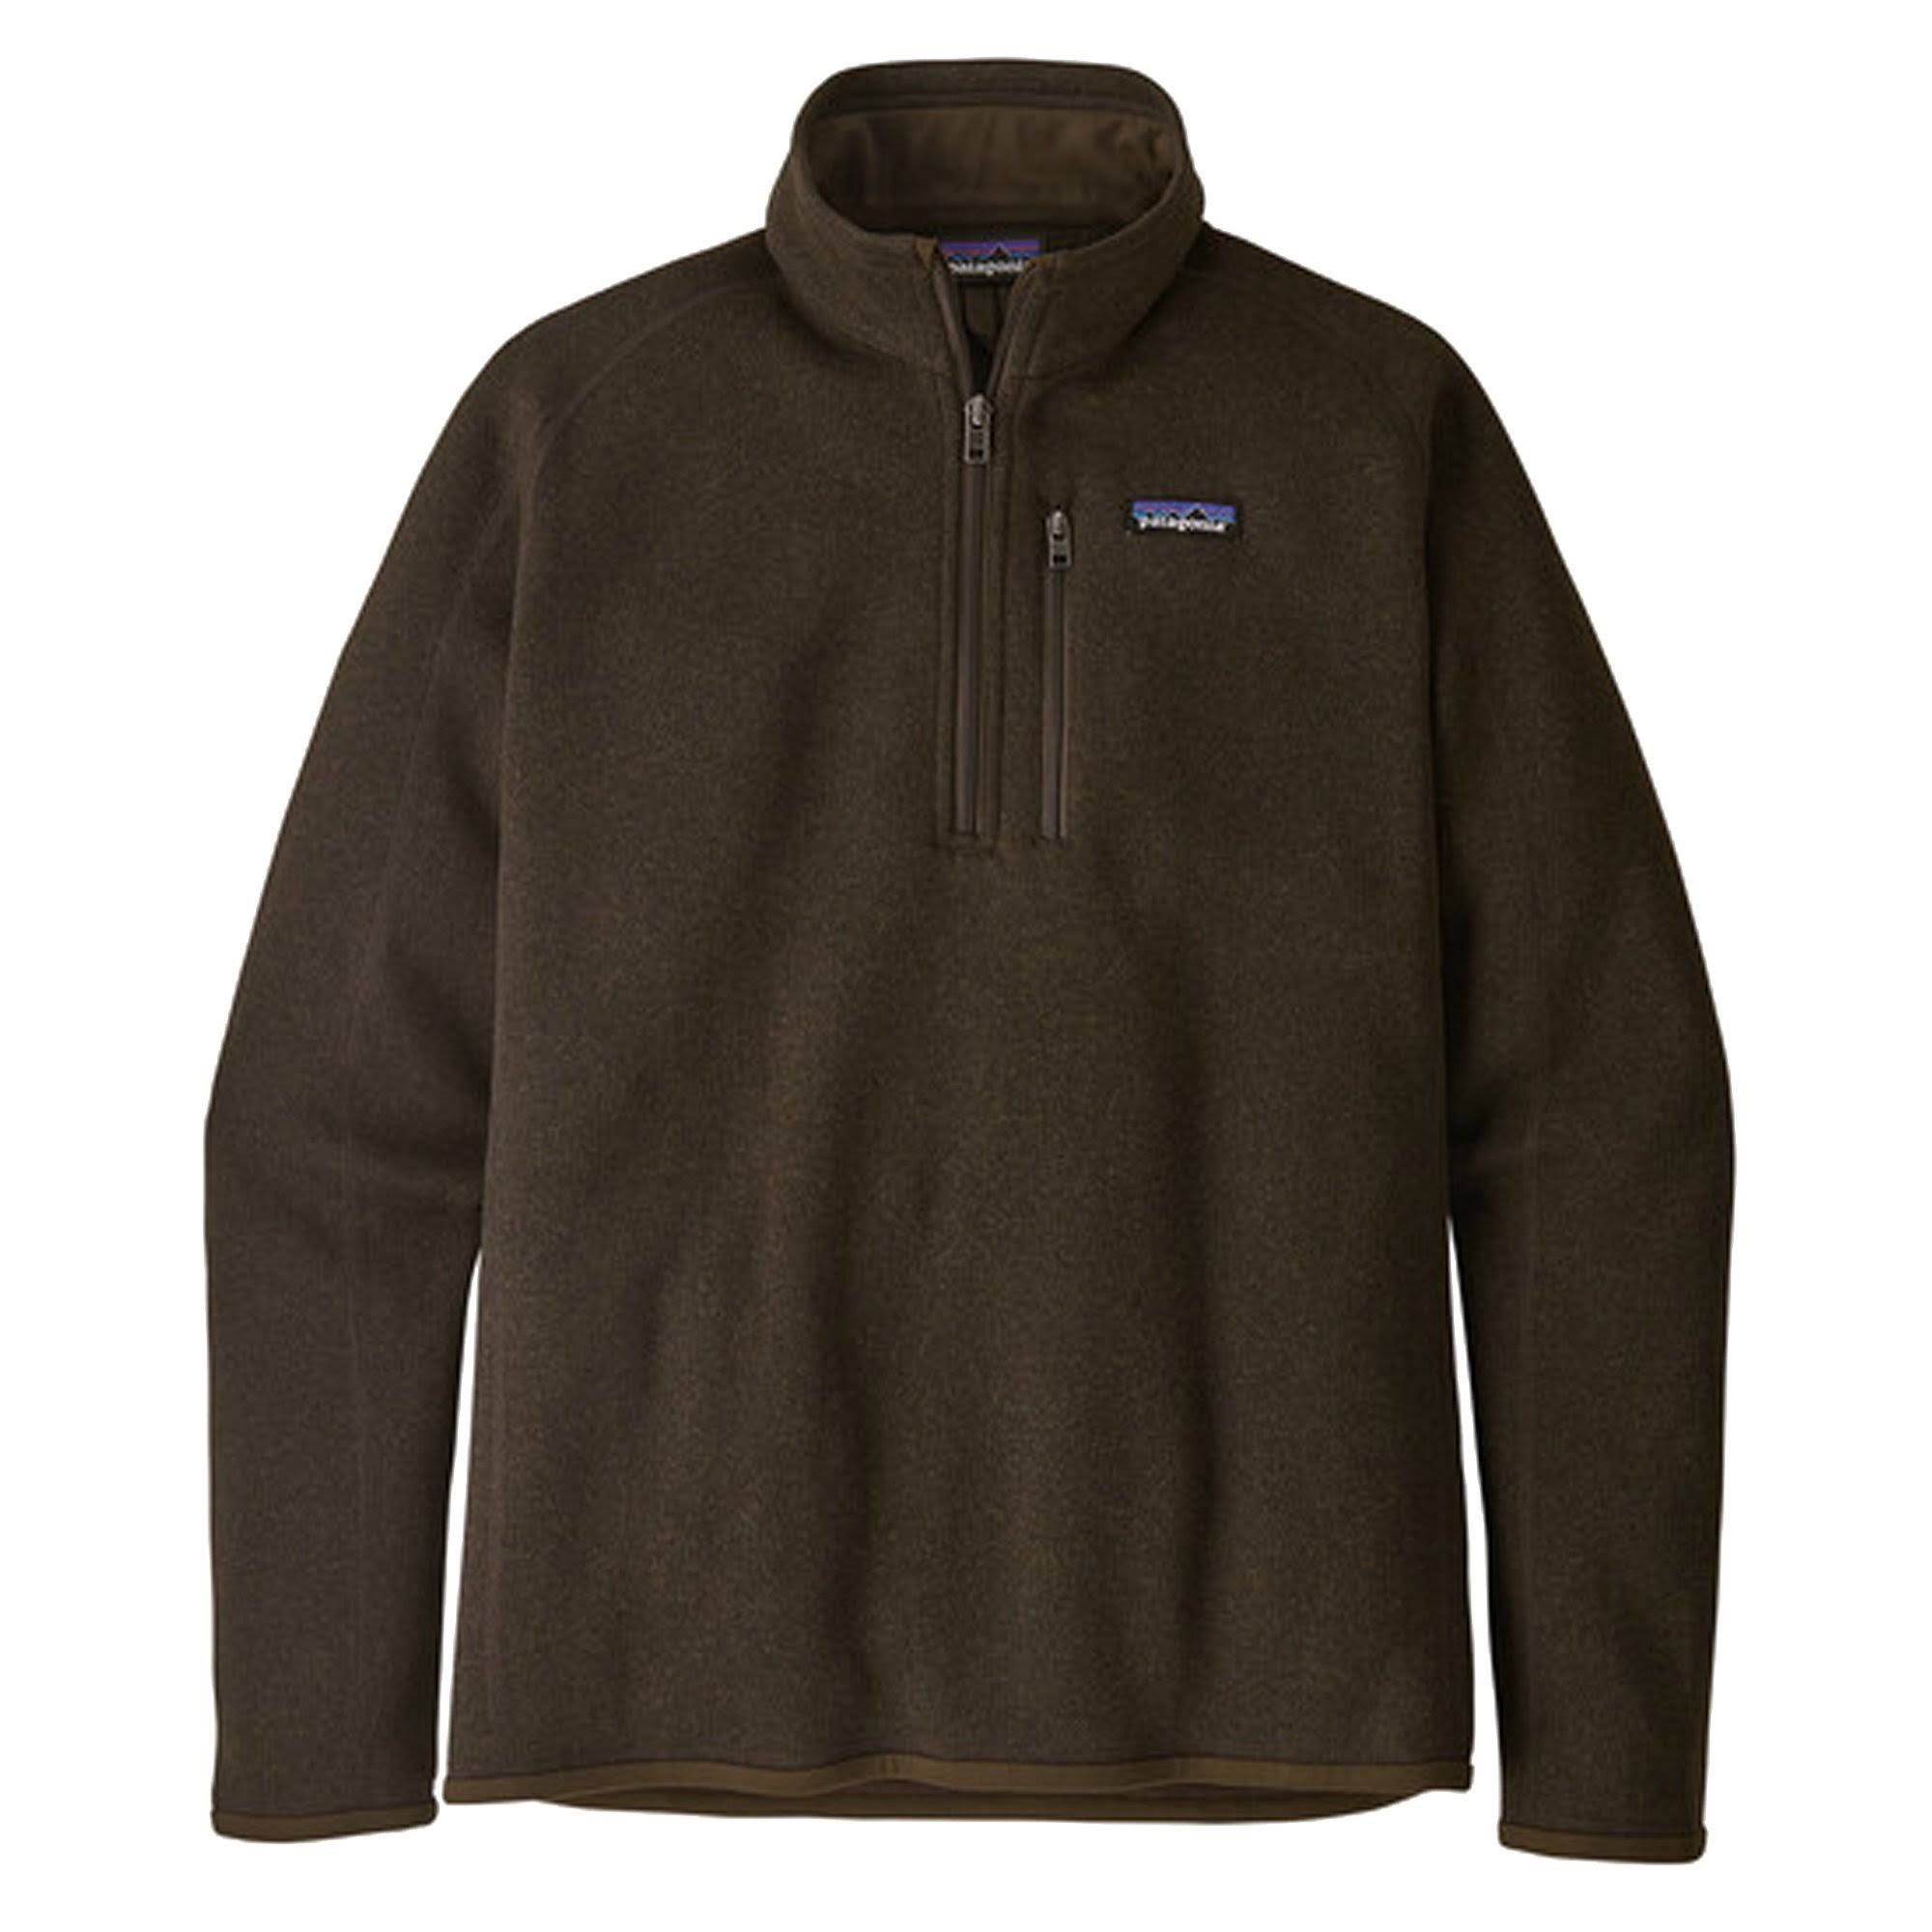 Patagonia Men's Better Sweater - 1/4 Zip, Brown